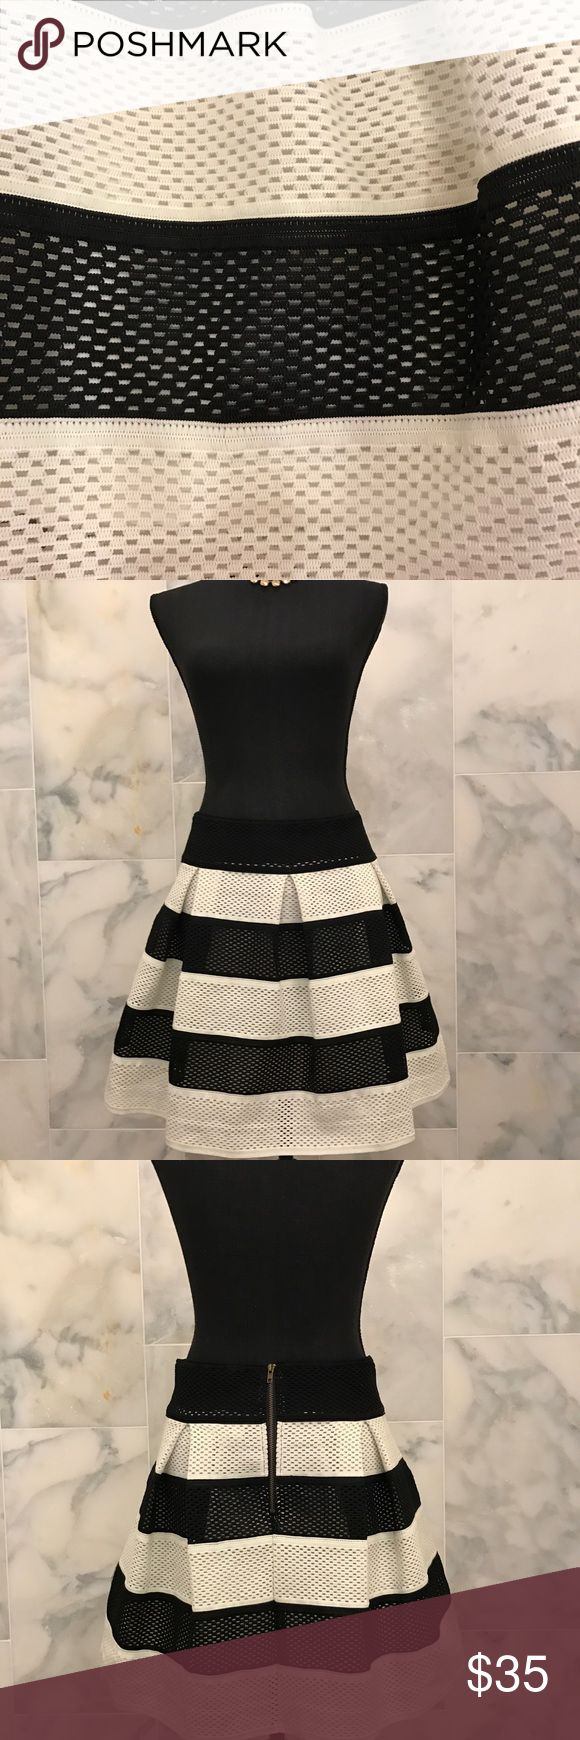 Umgee black & cream skirt Super cute Umgee black/cream wide stripped skirt. Cut out print fabric see pic. Very forgiving and flattering. New w/o tags. Umgee Skirts